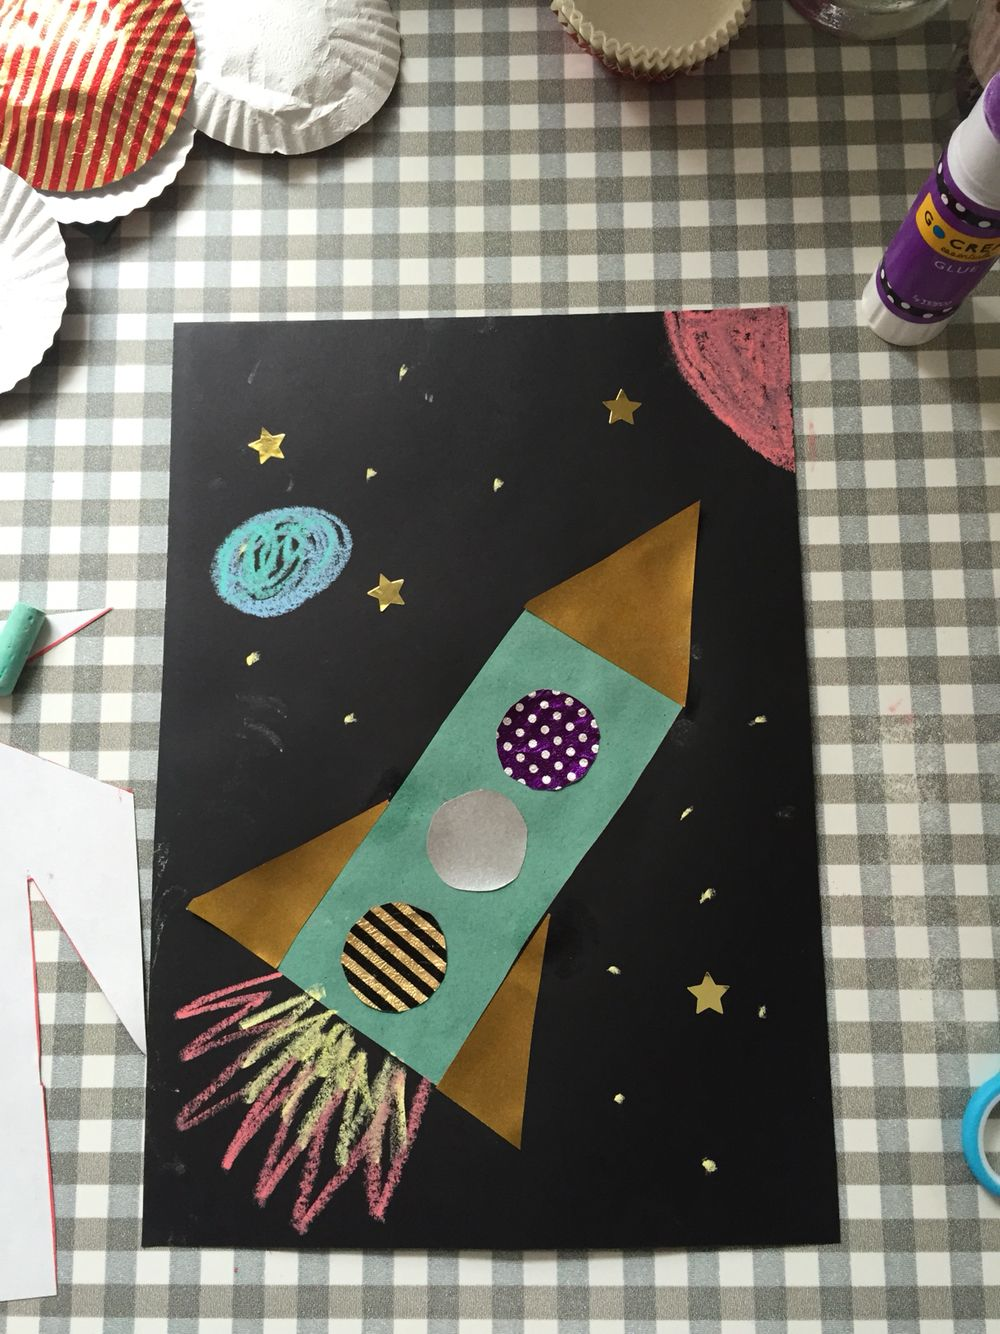 Toddler craft. Learning about shapes to make a rocket!